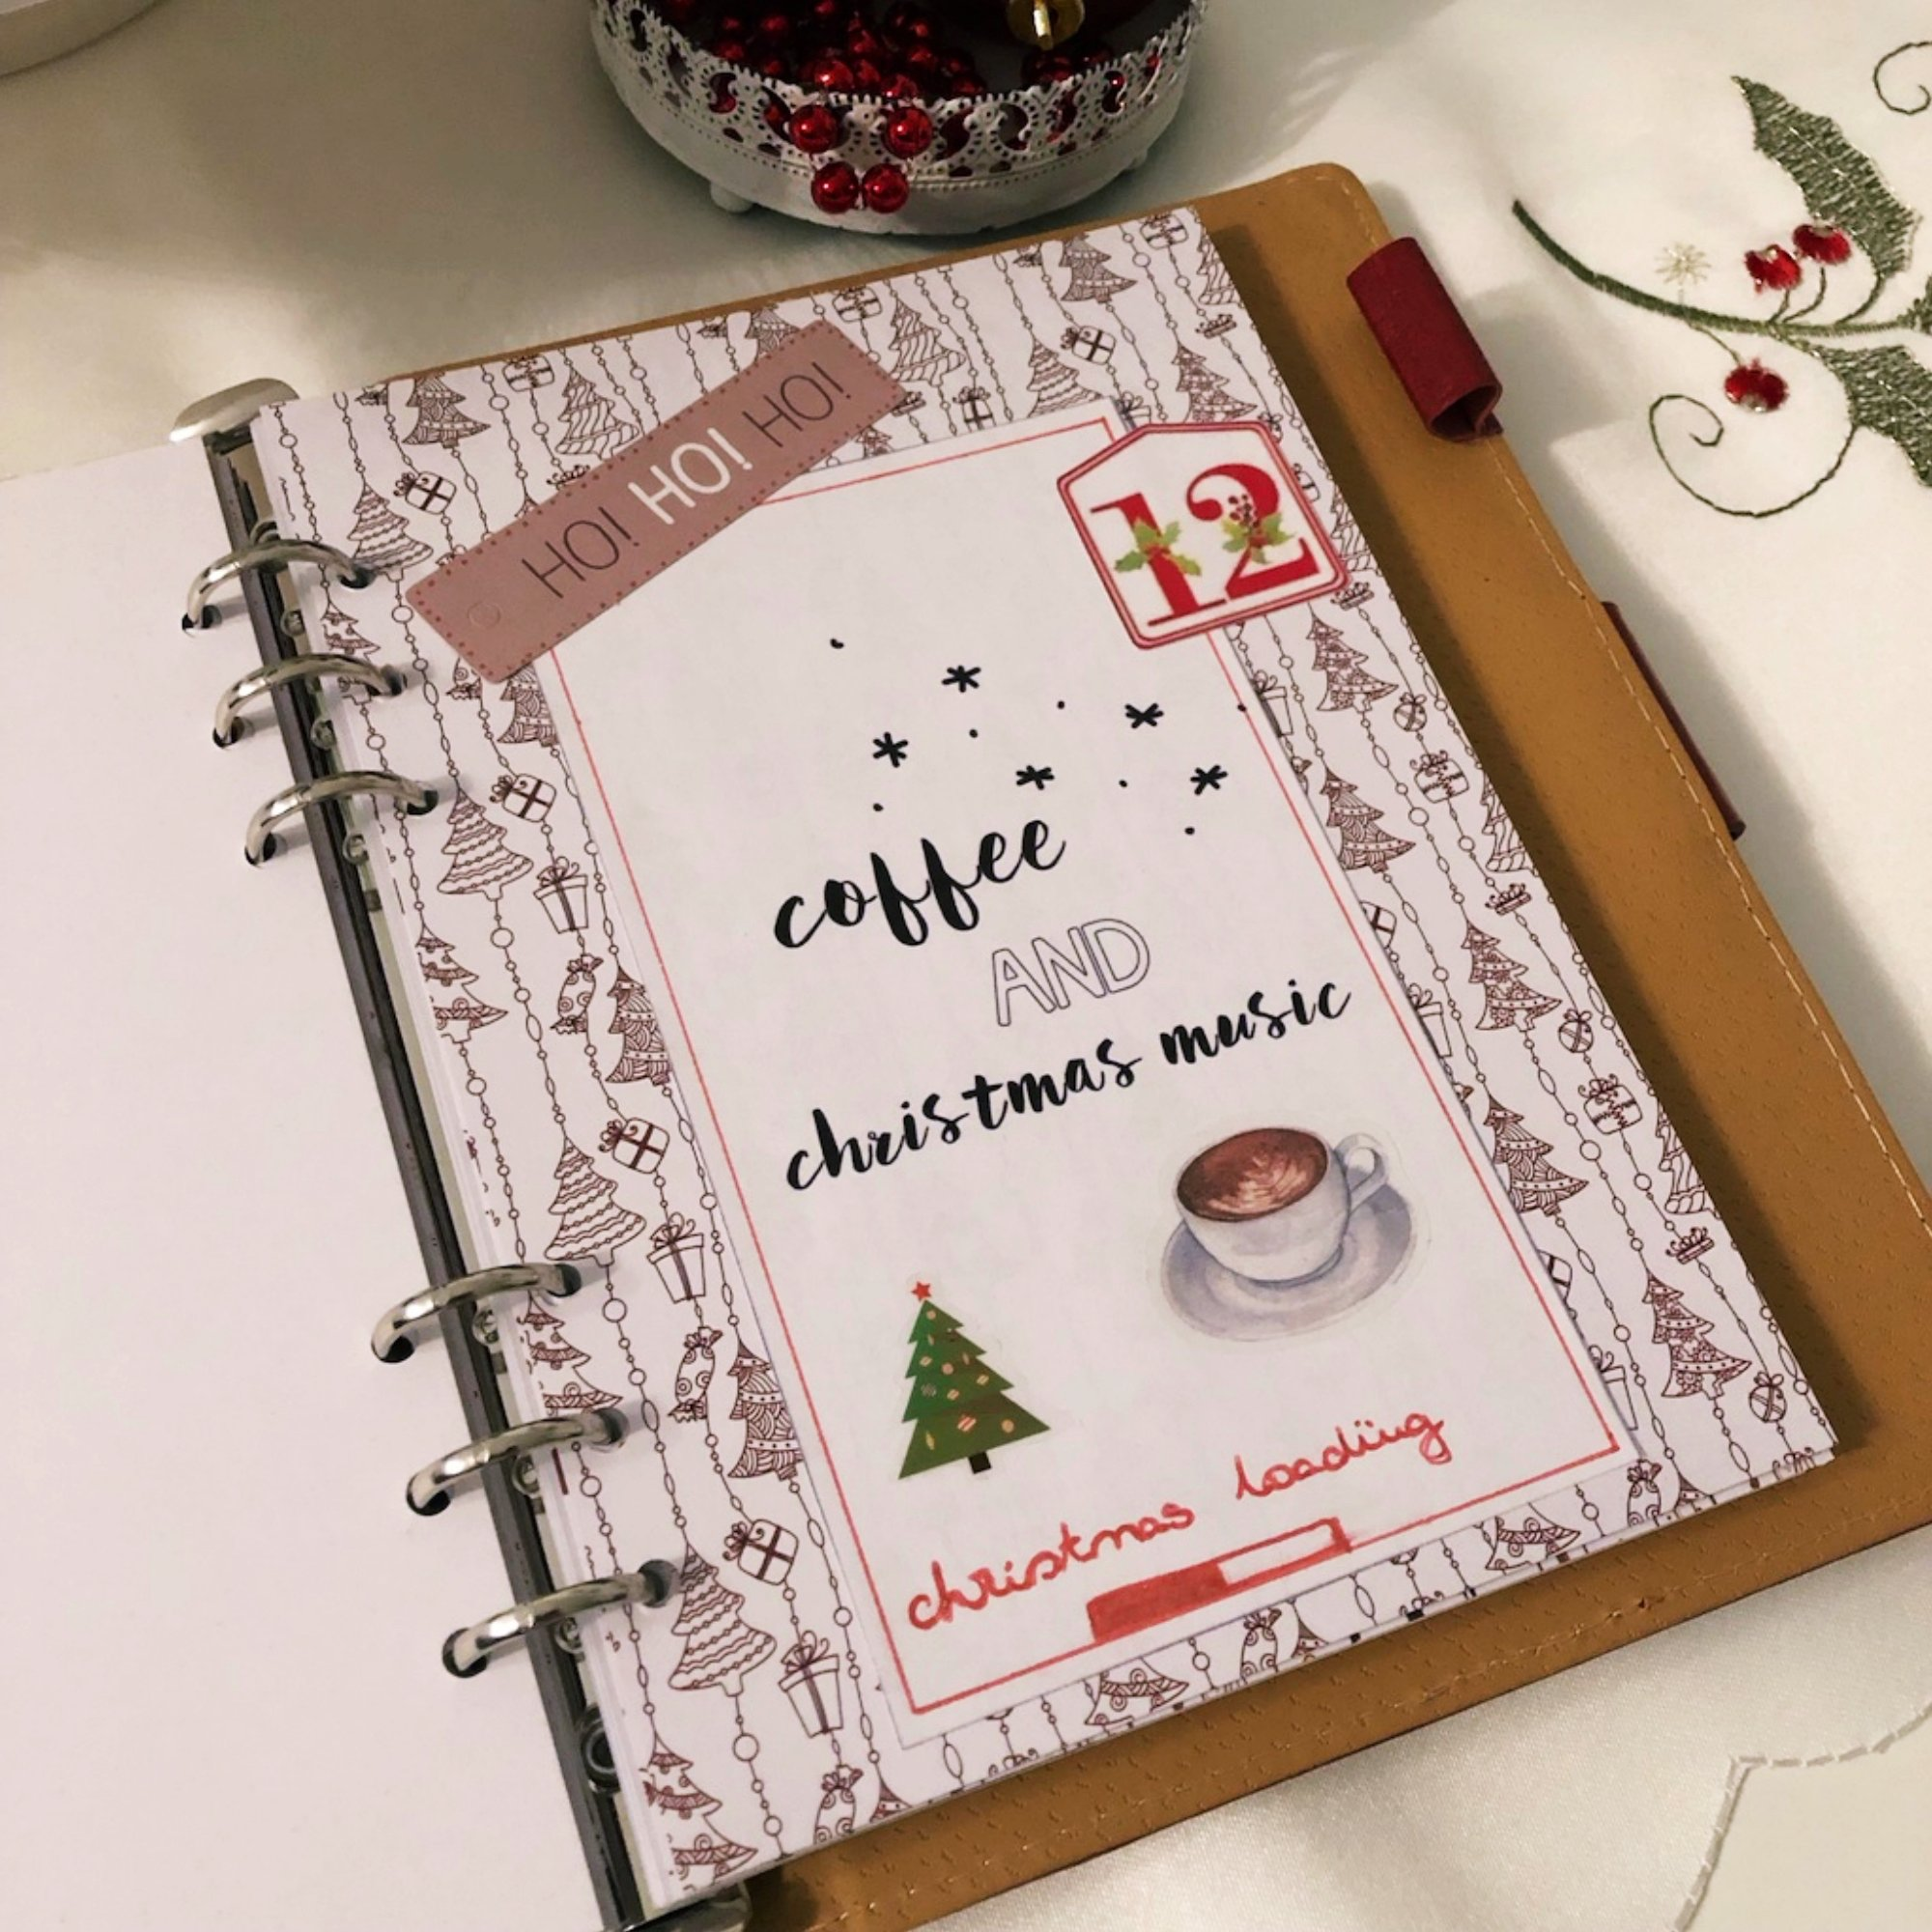 Creative journaling - December daily memories Day 12 - itstartswithacoffee.com #creativejournaling #journaling #daily